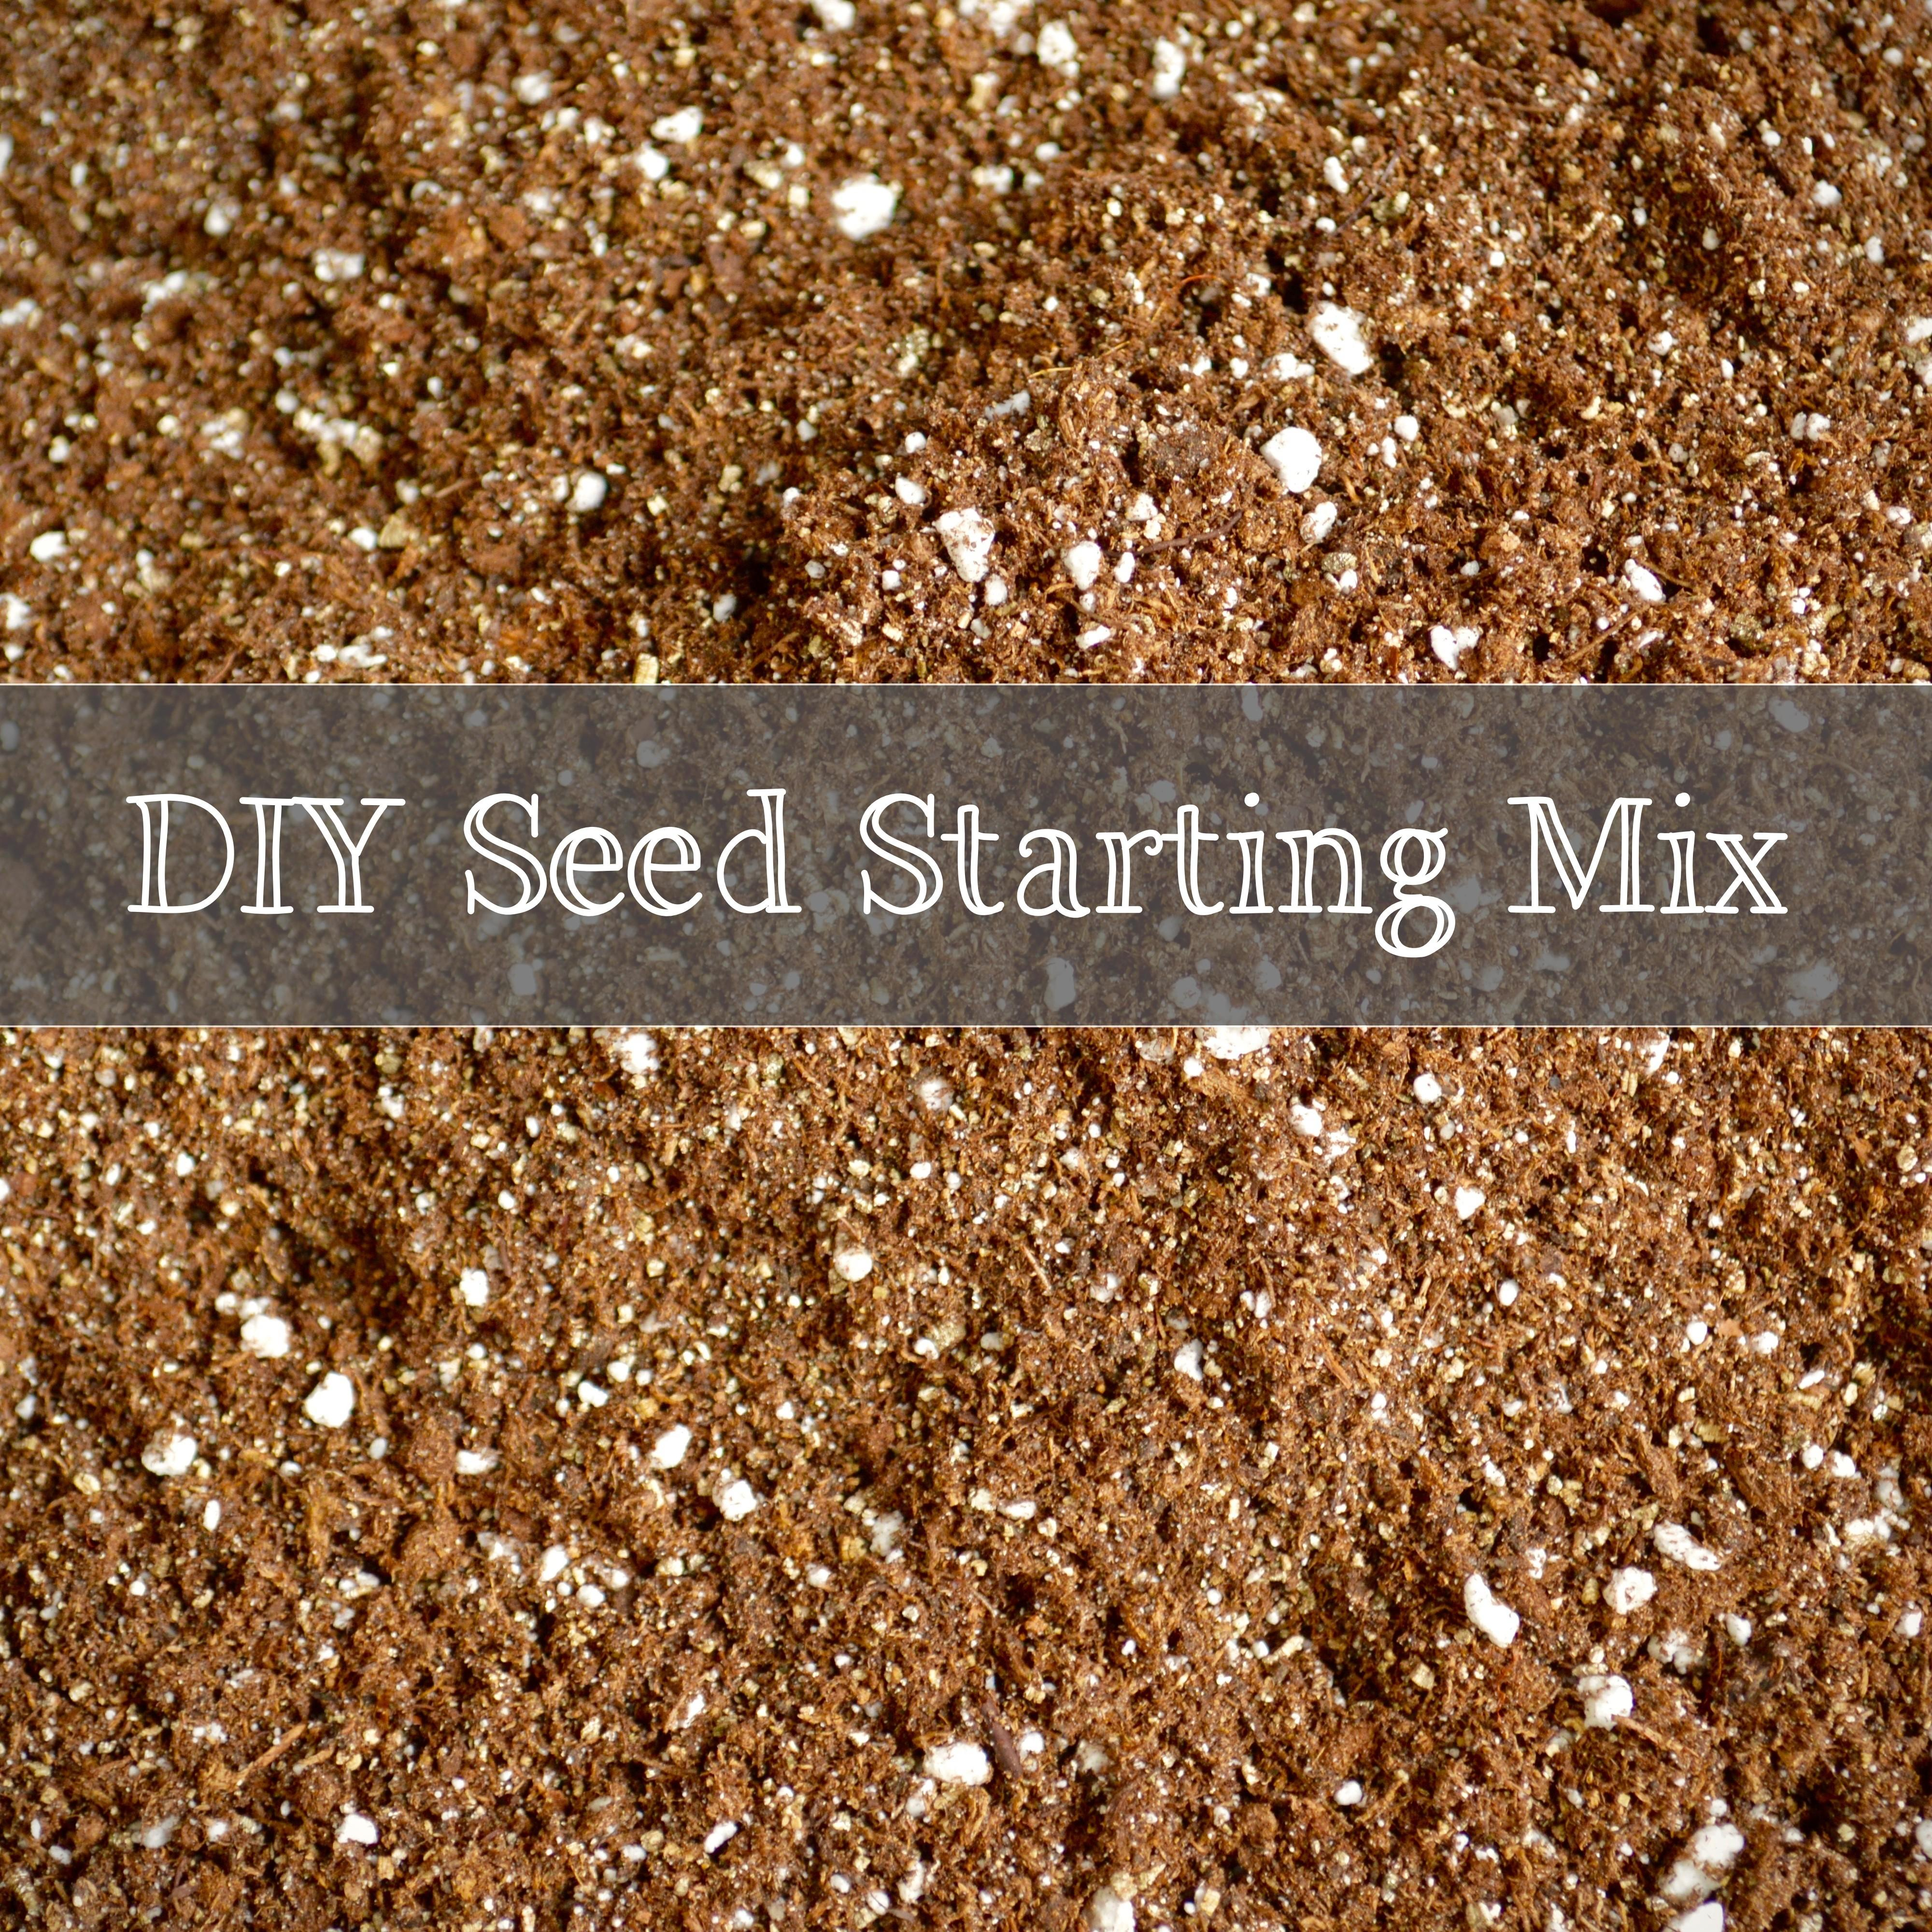 Diy Seed Starting Mix Trunnel Brook Farm